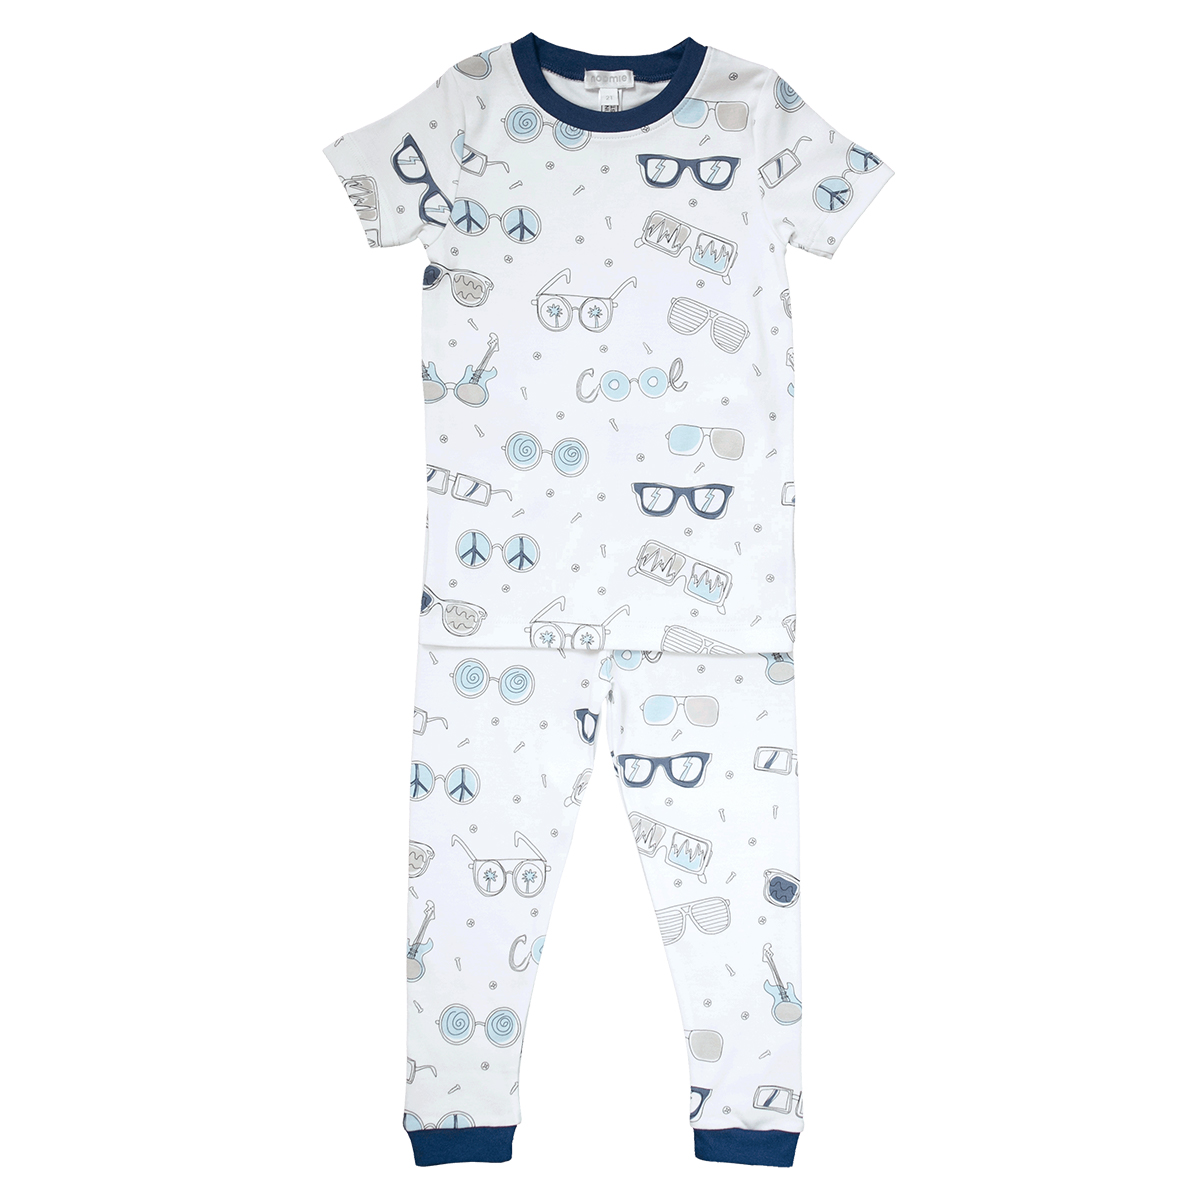 Baby Noomie Two Piece PJ Short Sleeve/ Shorts- Blue Shades